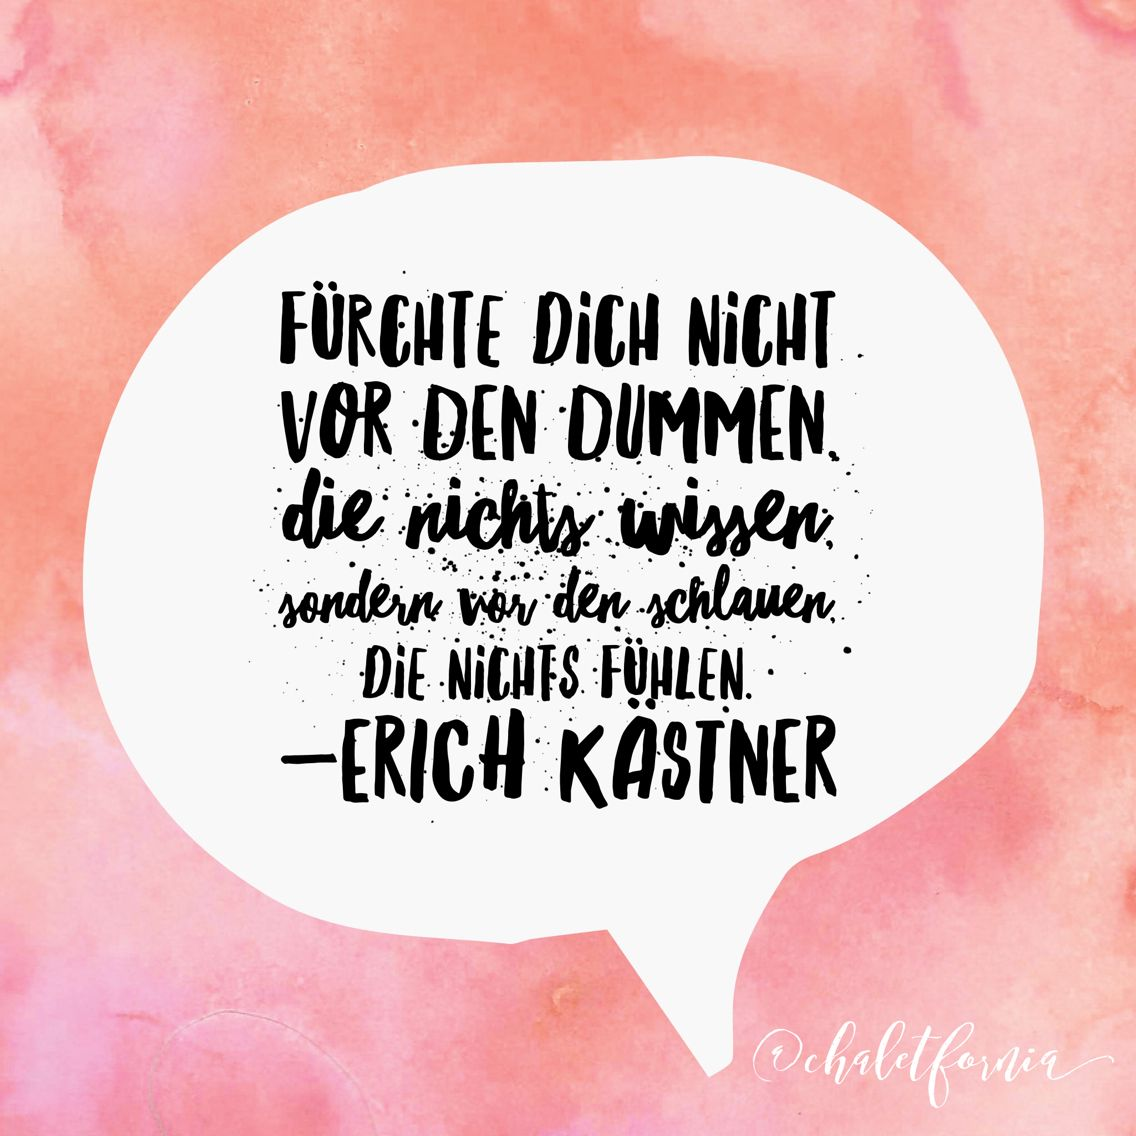 Words of wisdom #erich Kästner | Chaletfornia | Pinterest | Words ...